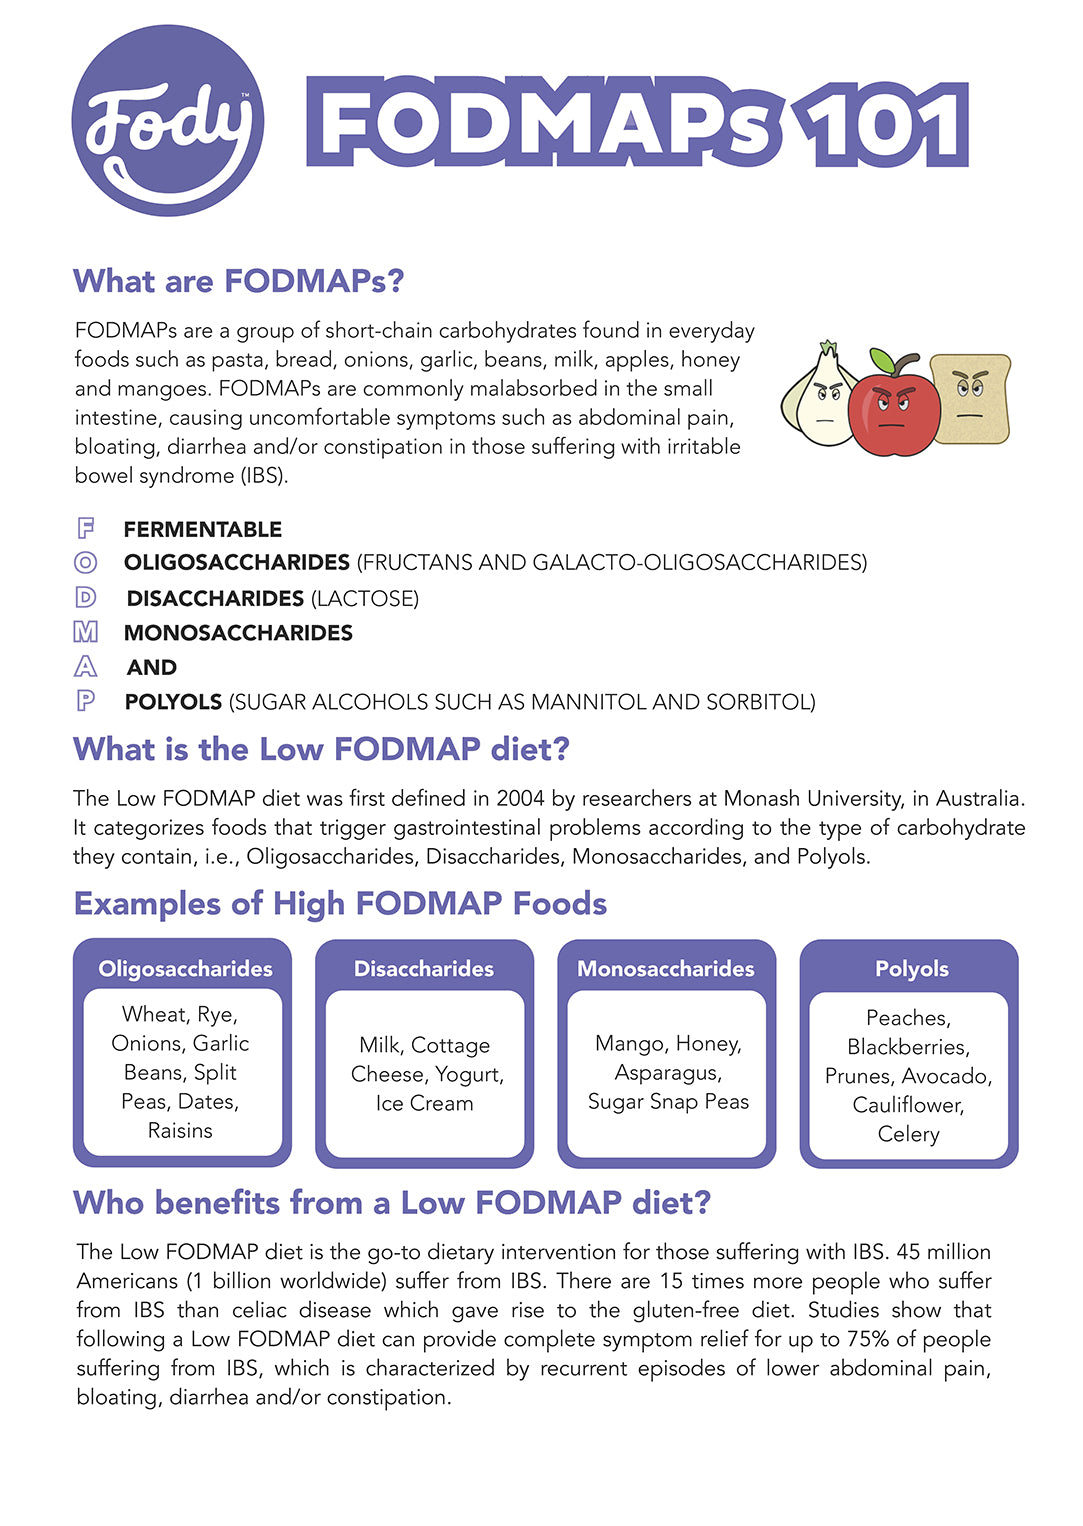 What are fodmaps fodmap foods for beginners fody foods what are fodmaps publicscrutiny Images